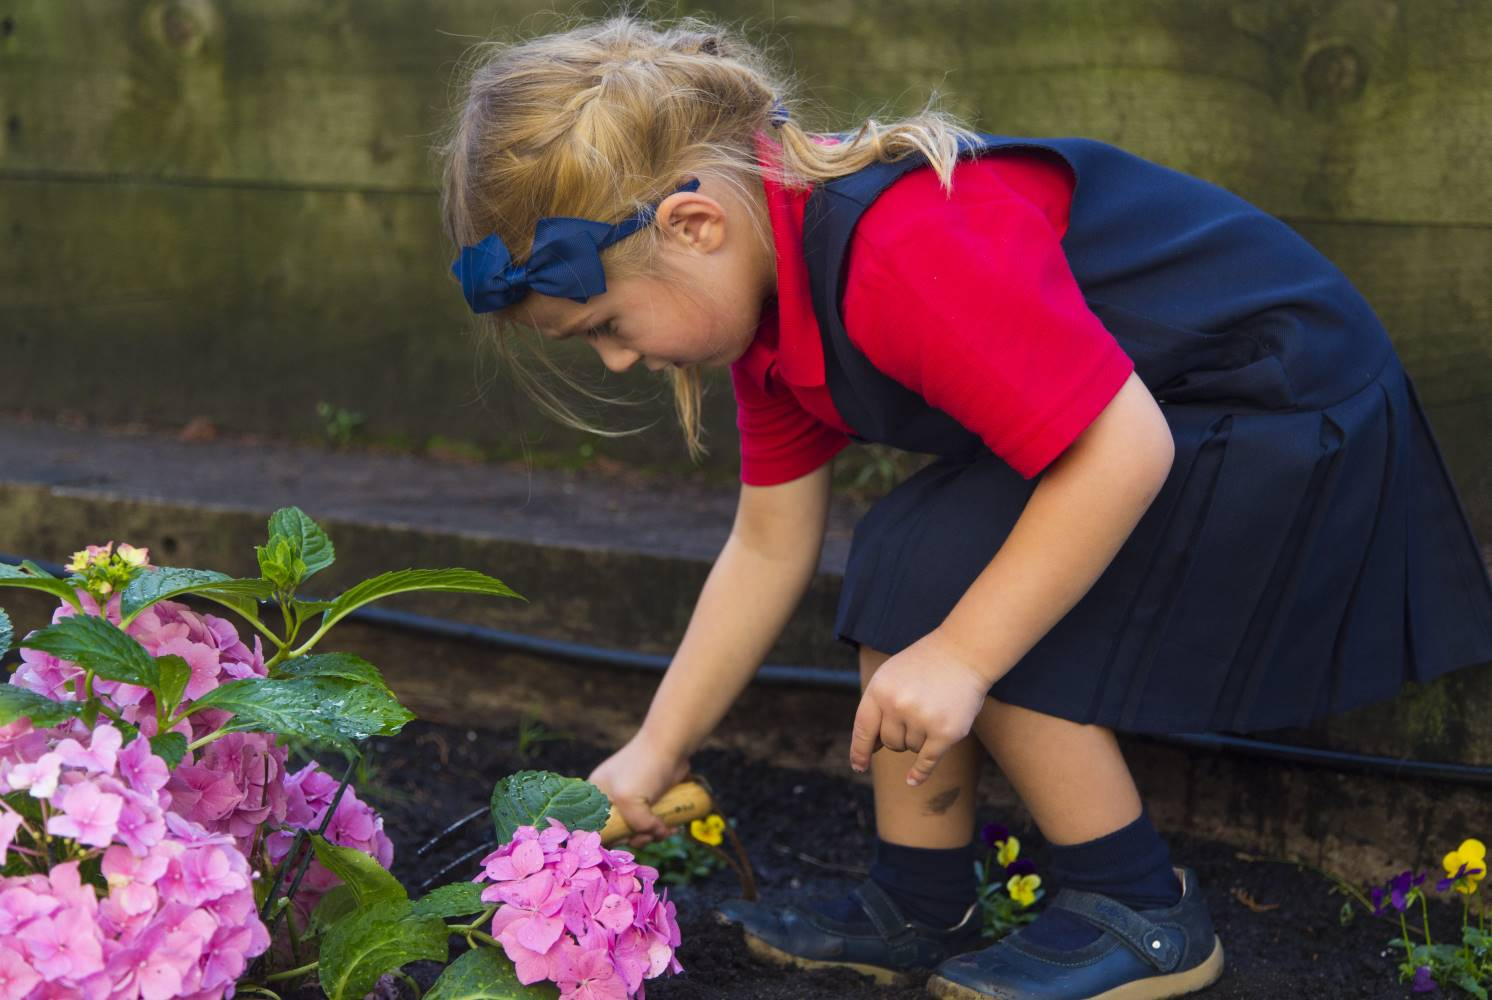 Maple Walk school holds a varierty of after school clubs.  Gardening is popular and teaches children how to care for plants, the life-cycle of plants and gives them physical activity.